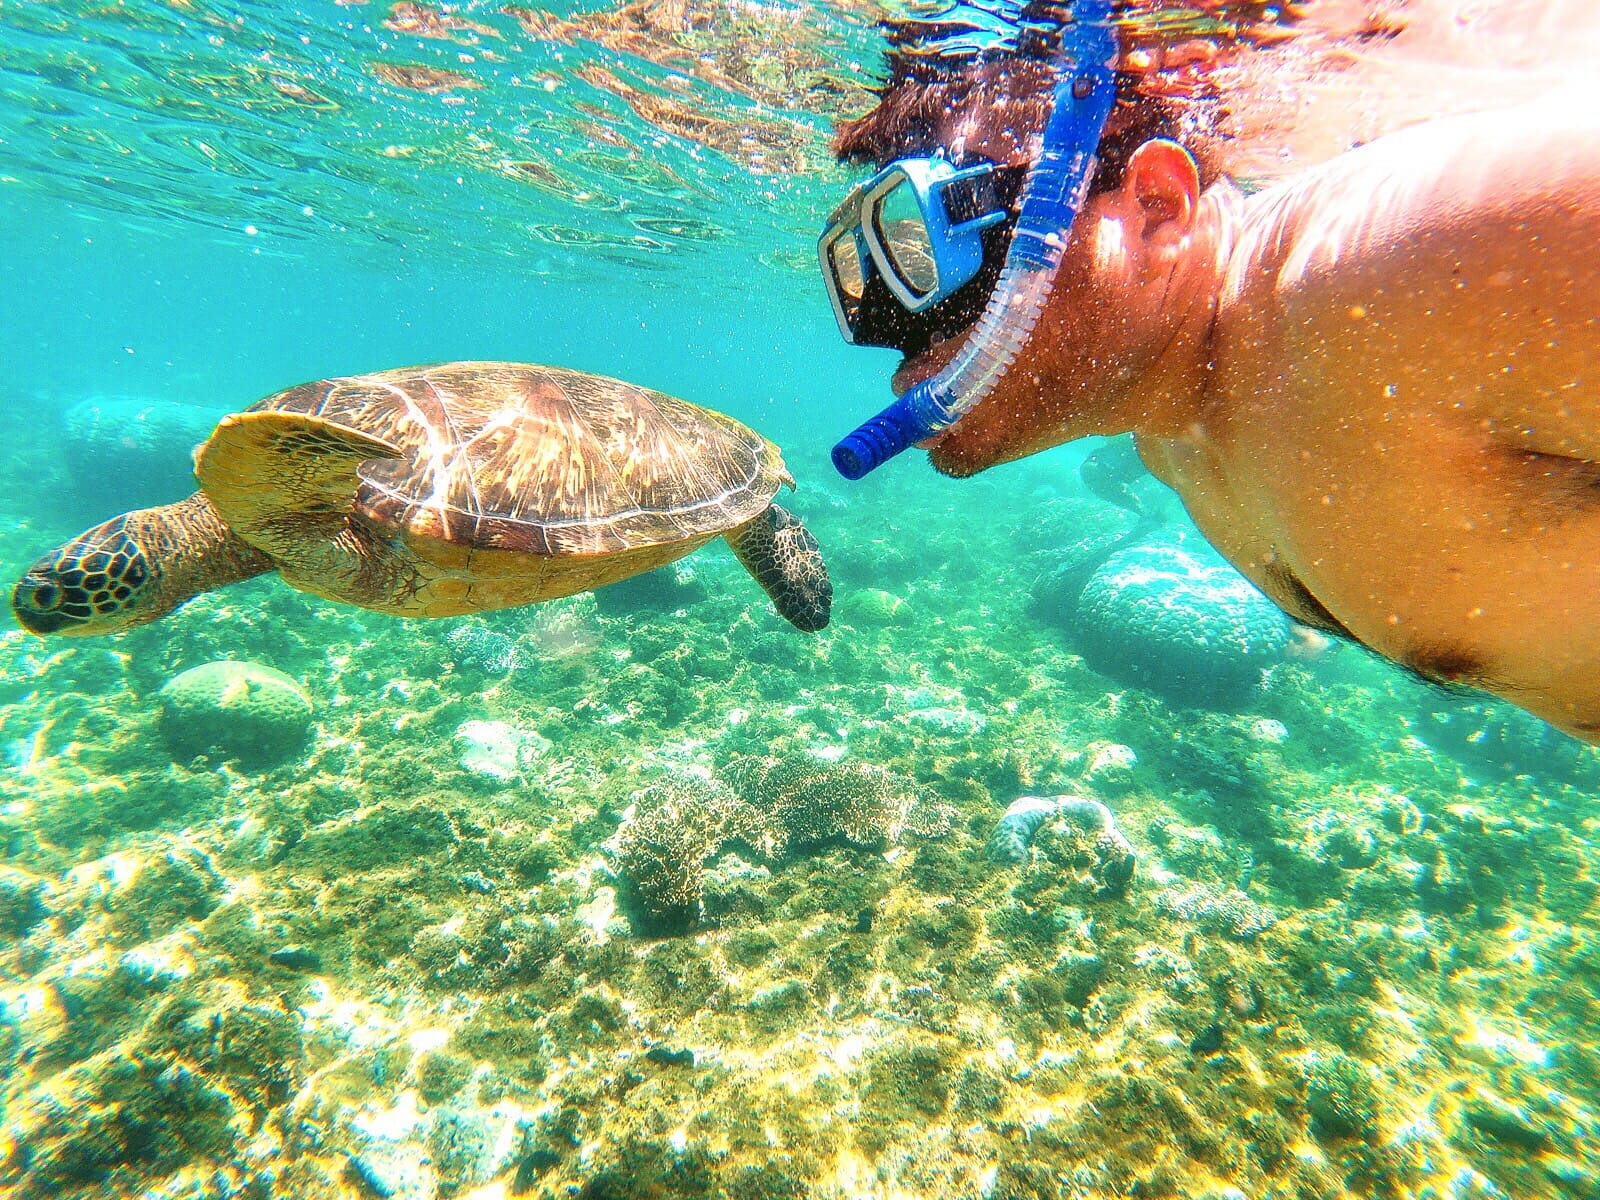 Swimming with Sea Turtles in Apo Island, Philippines